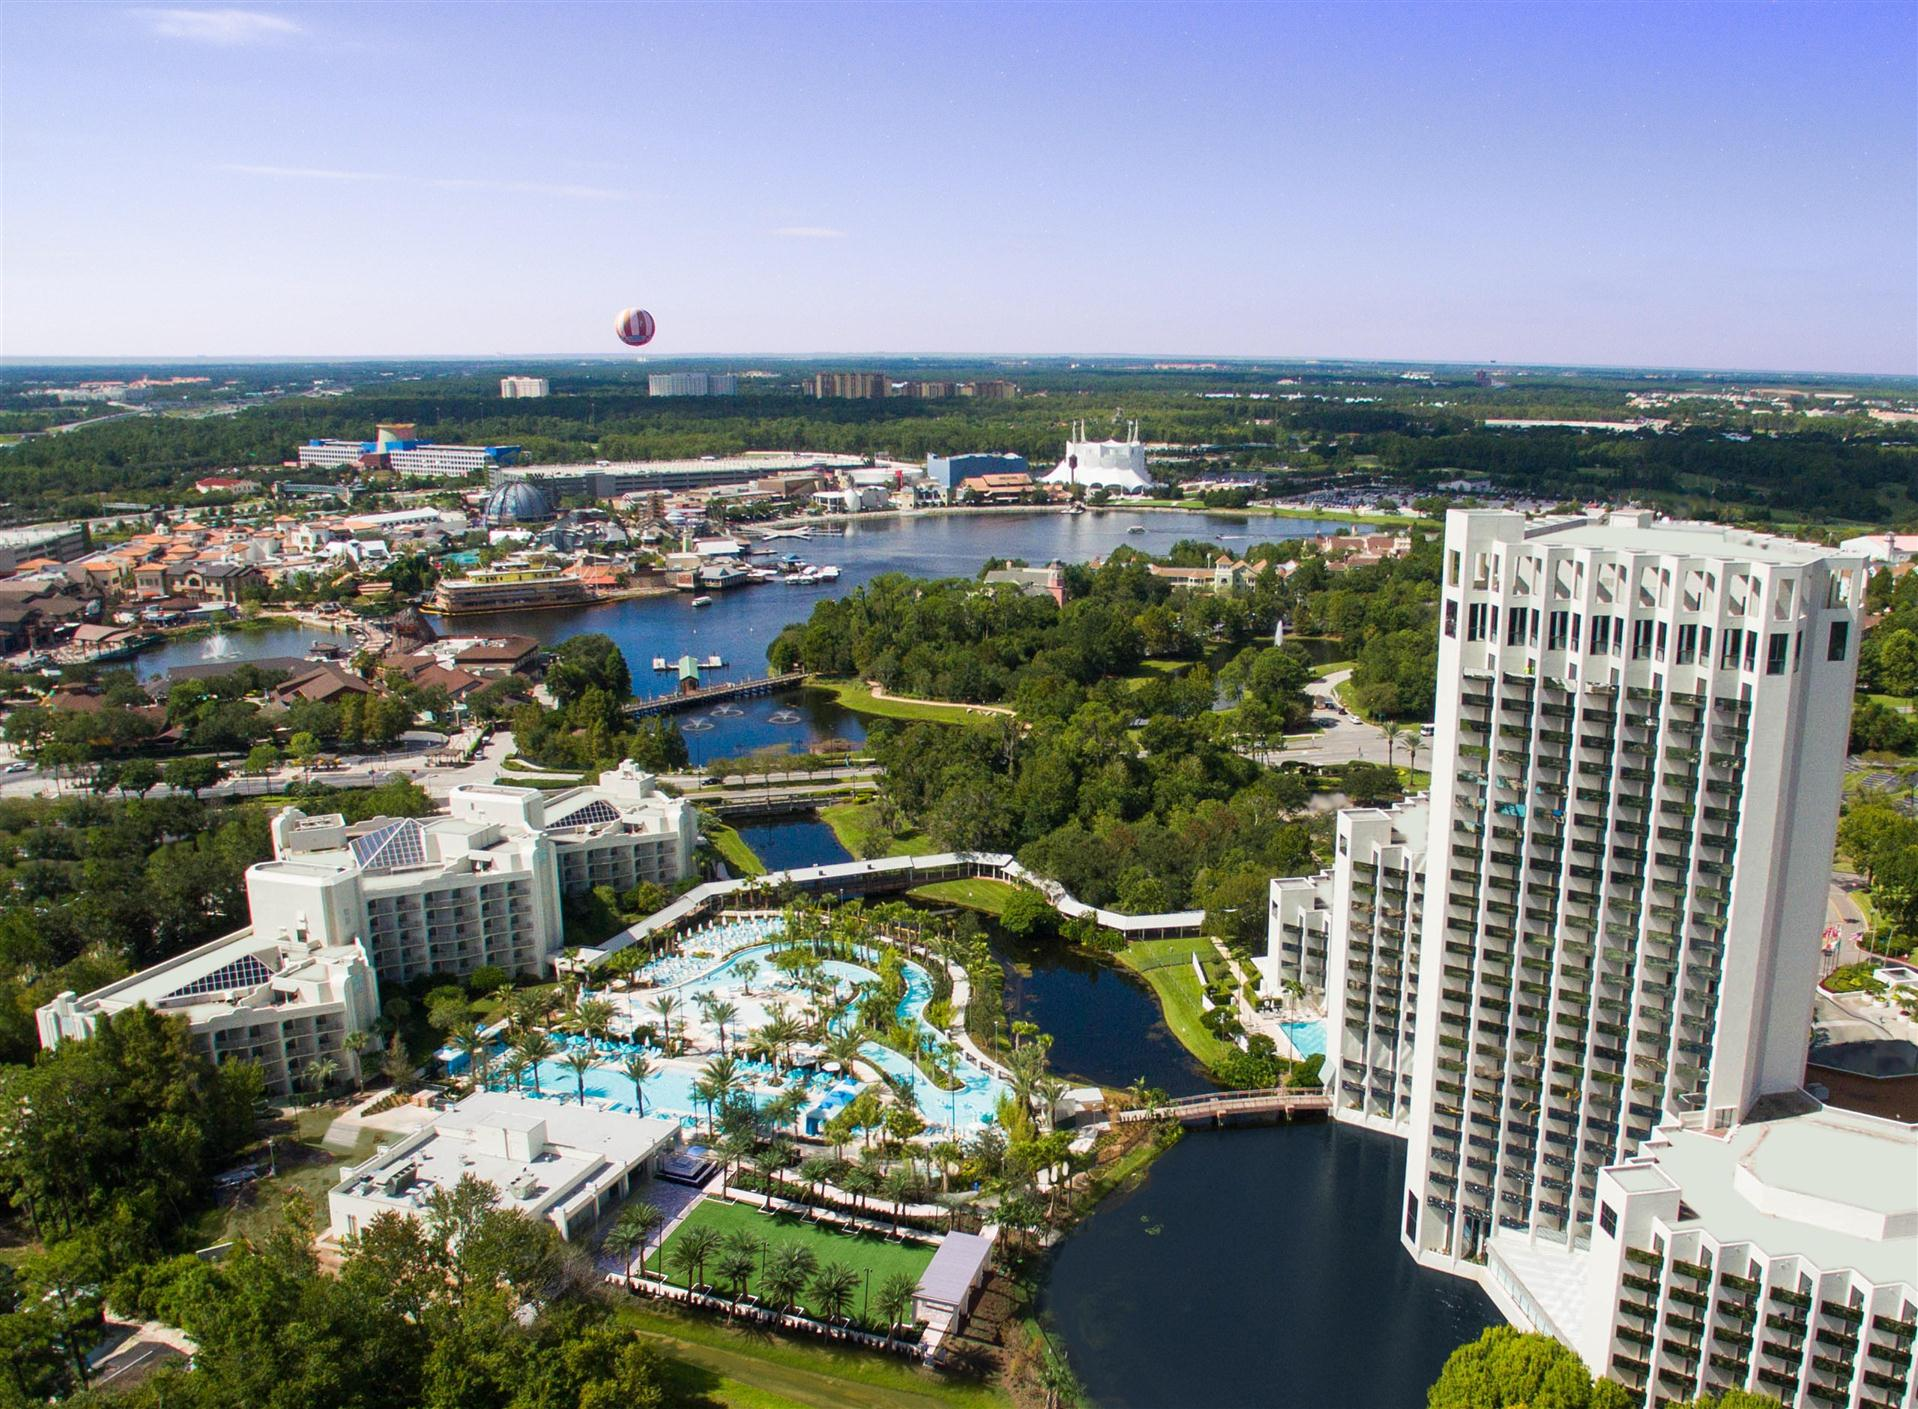 Meetings And Events At Gaylord Palms Resort Convention Center Theater Structured Wiring Home Networking Orlando Central Florida Hilton Buena Vista Palace Disney Springs Area